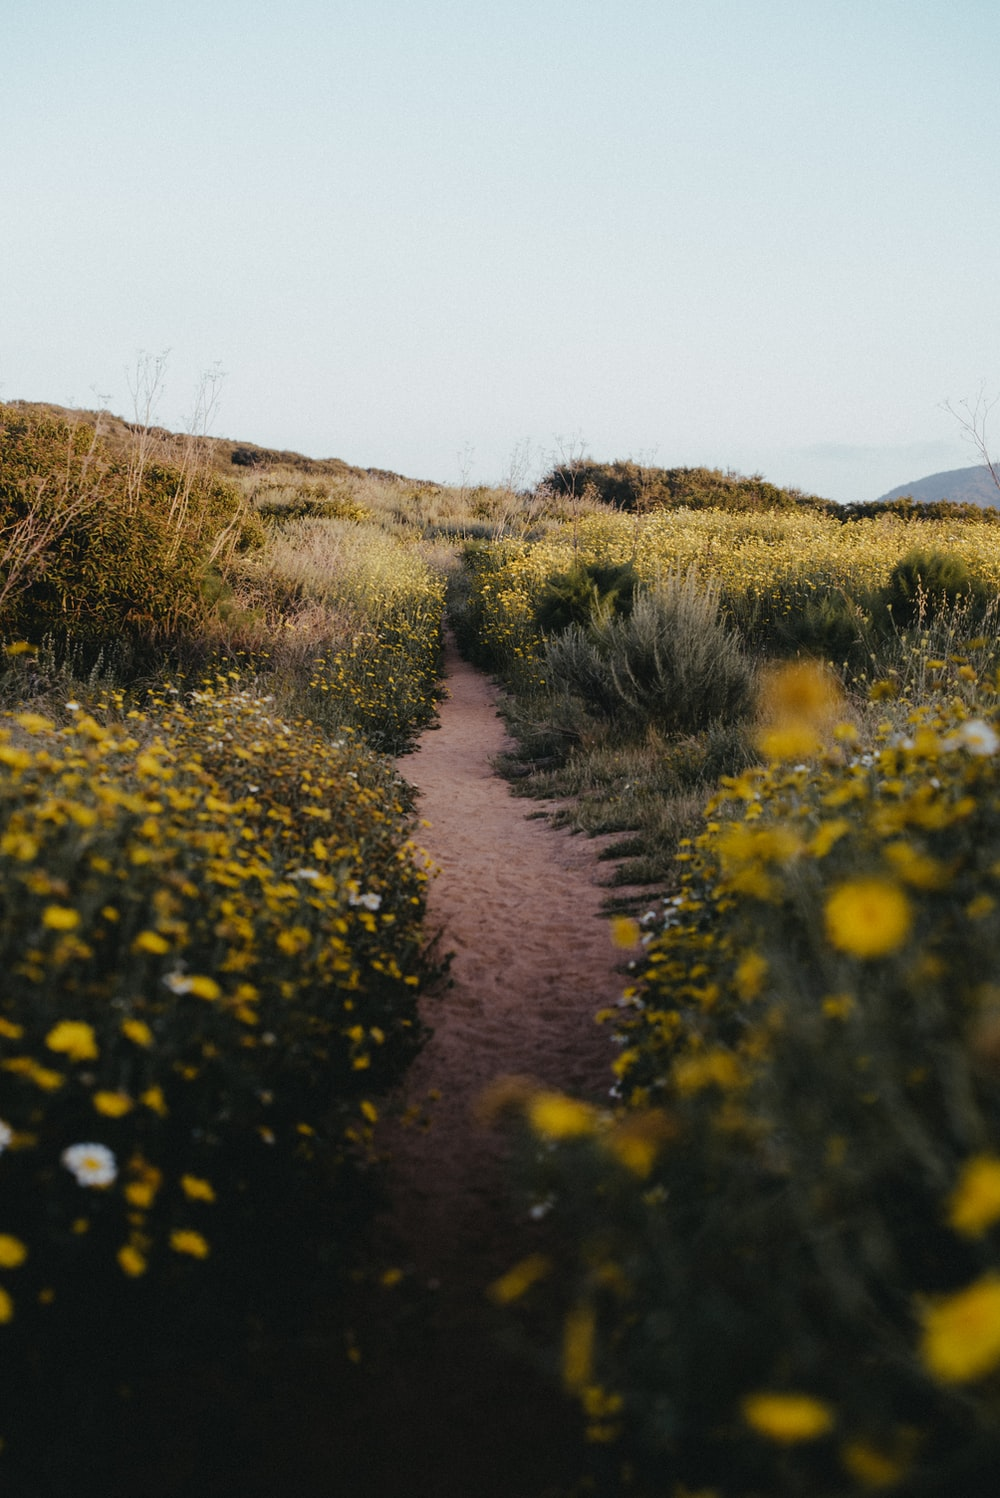 yellow flowers on brown dirt road